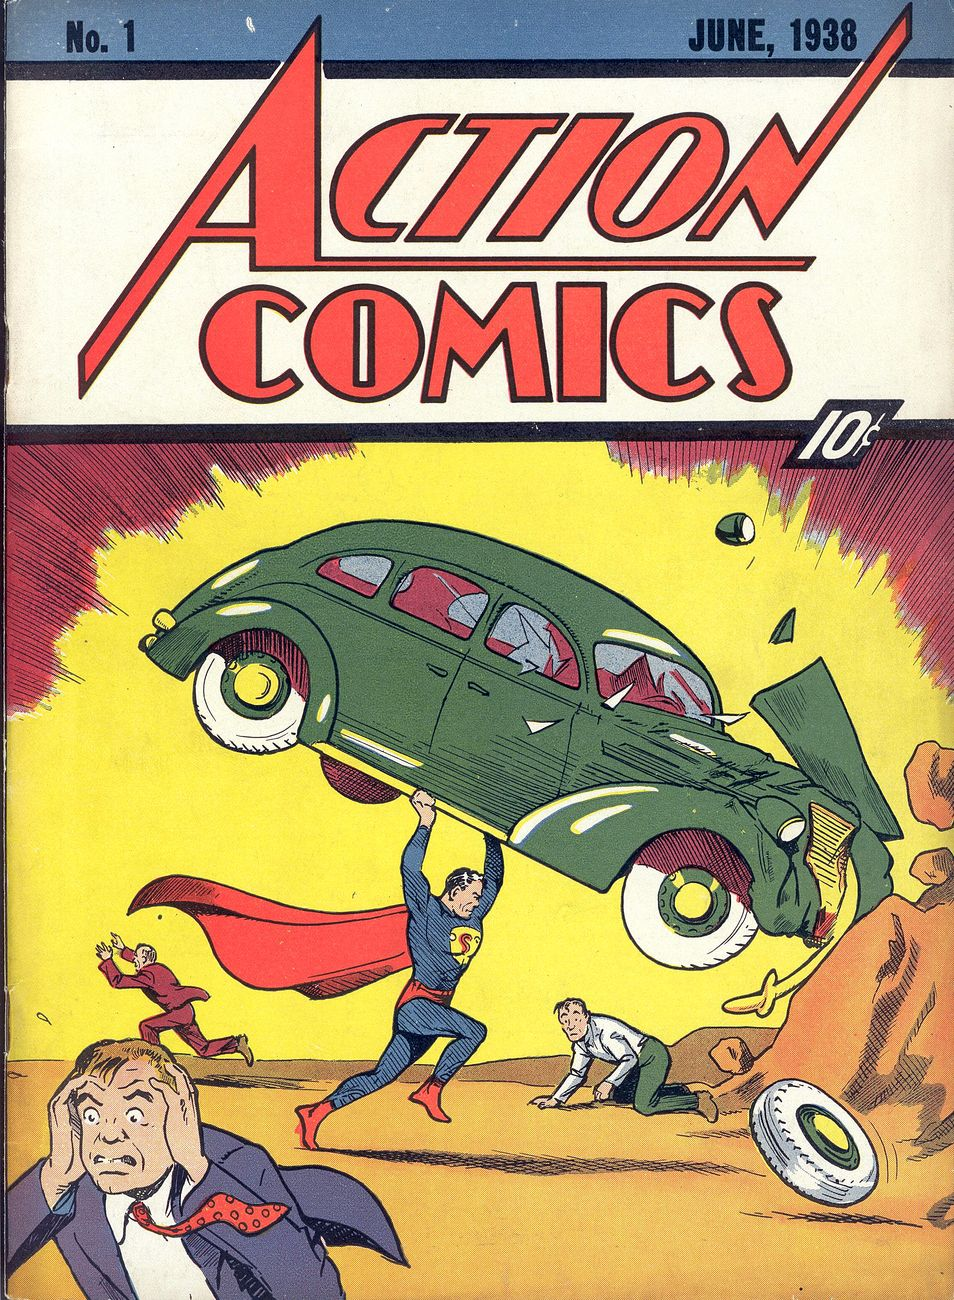 Il primo numero di Action Comics recuperato dal LAPD Los Angeles Police Department Art Theft Detail